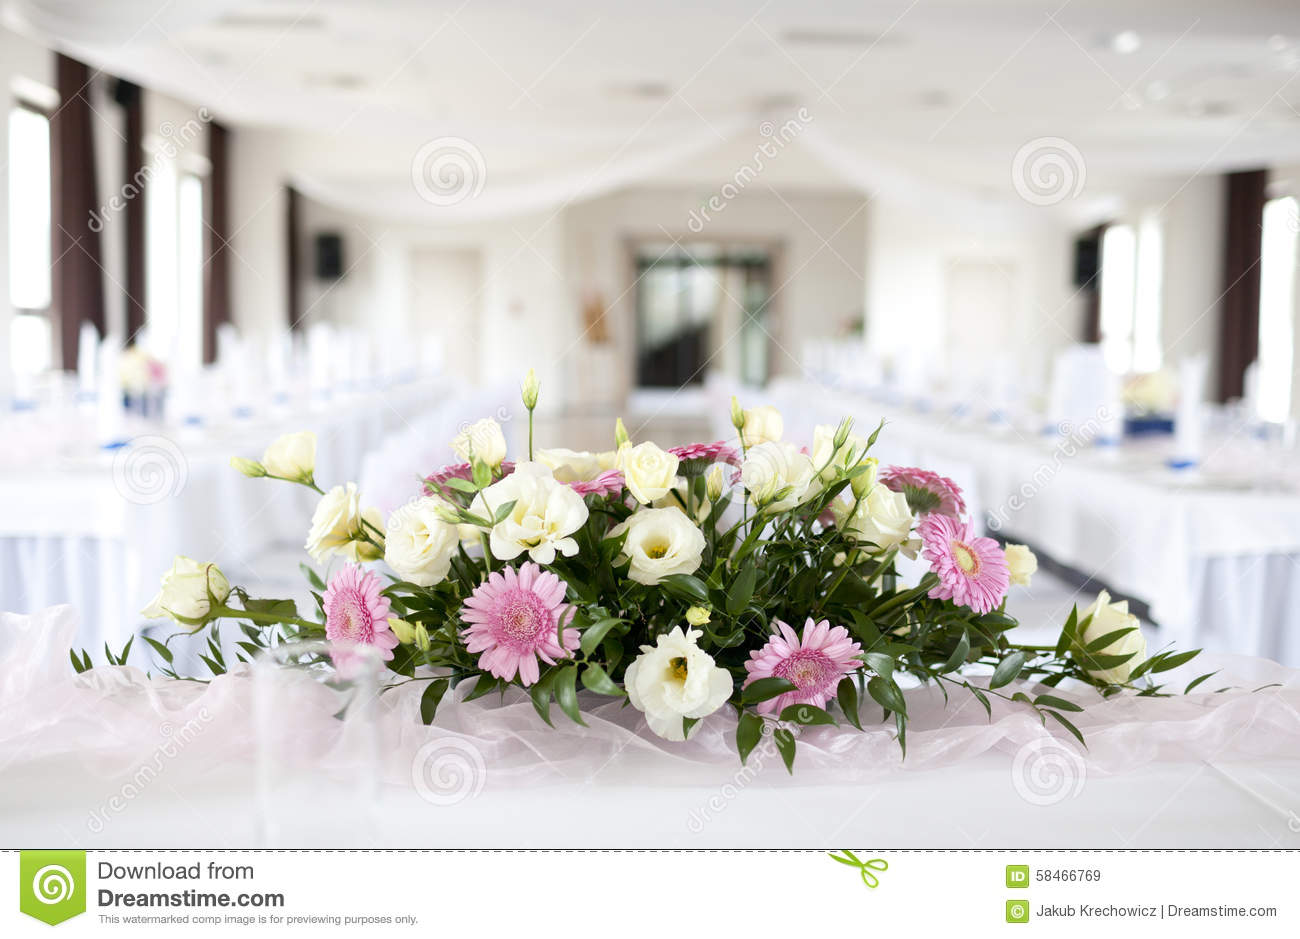 Wedding table with bouquet of flowers stock image image of bride wedding table with bouquet of flowers izmirmasajfo Gallery